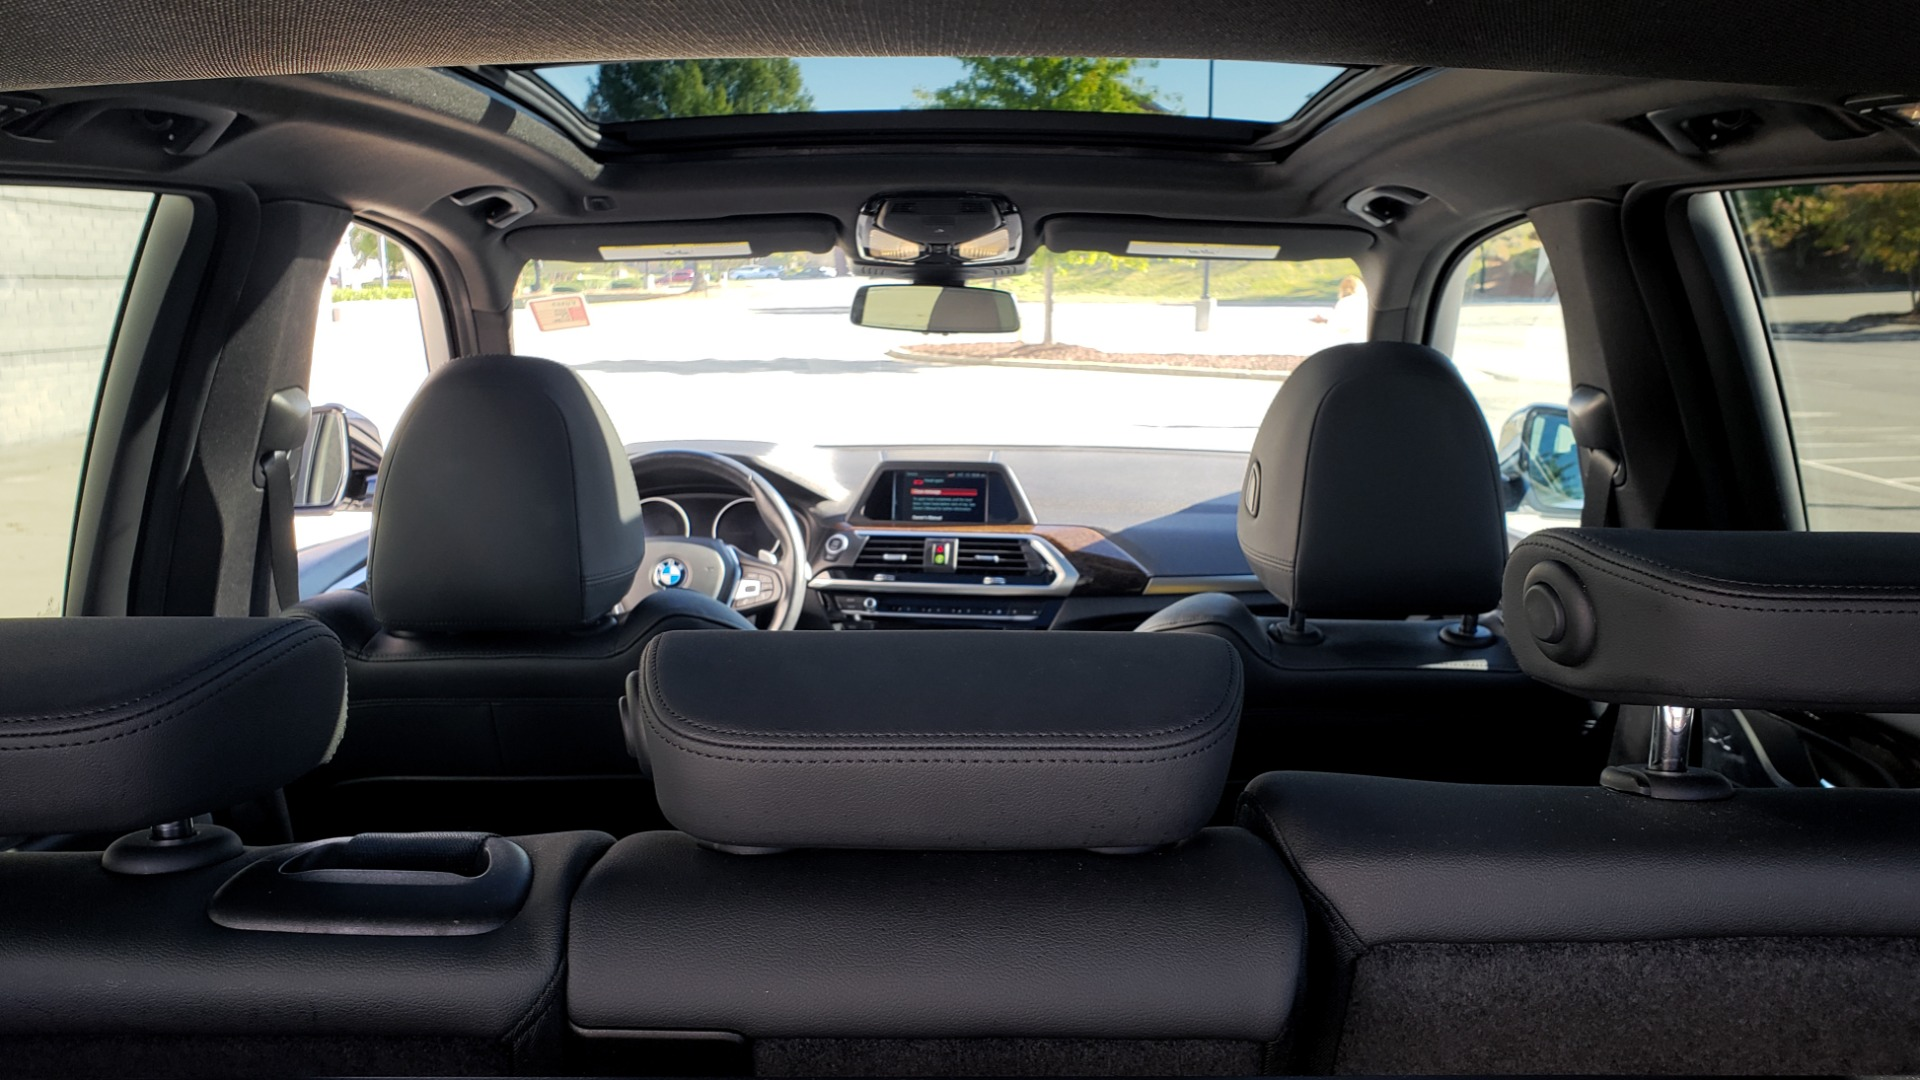 Used 2019 BMW X3 XDRIVE30I / DRVR ASST / PANO-ROOF / HTD STS / REARVIEW for sale $41,995 at Formula Imports in Charlotte NC 28227 21